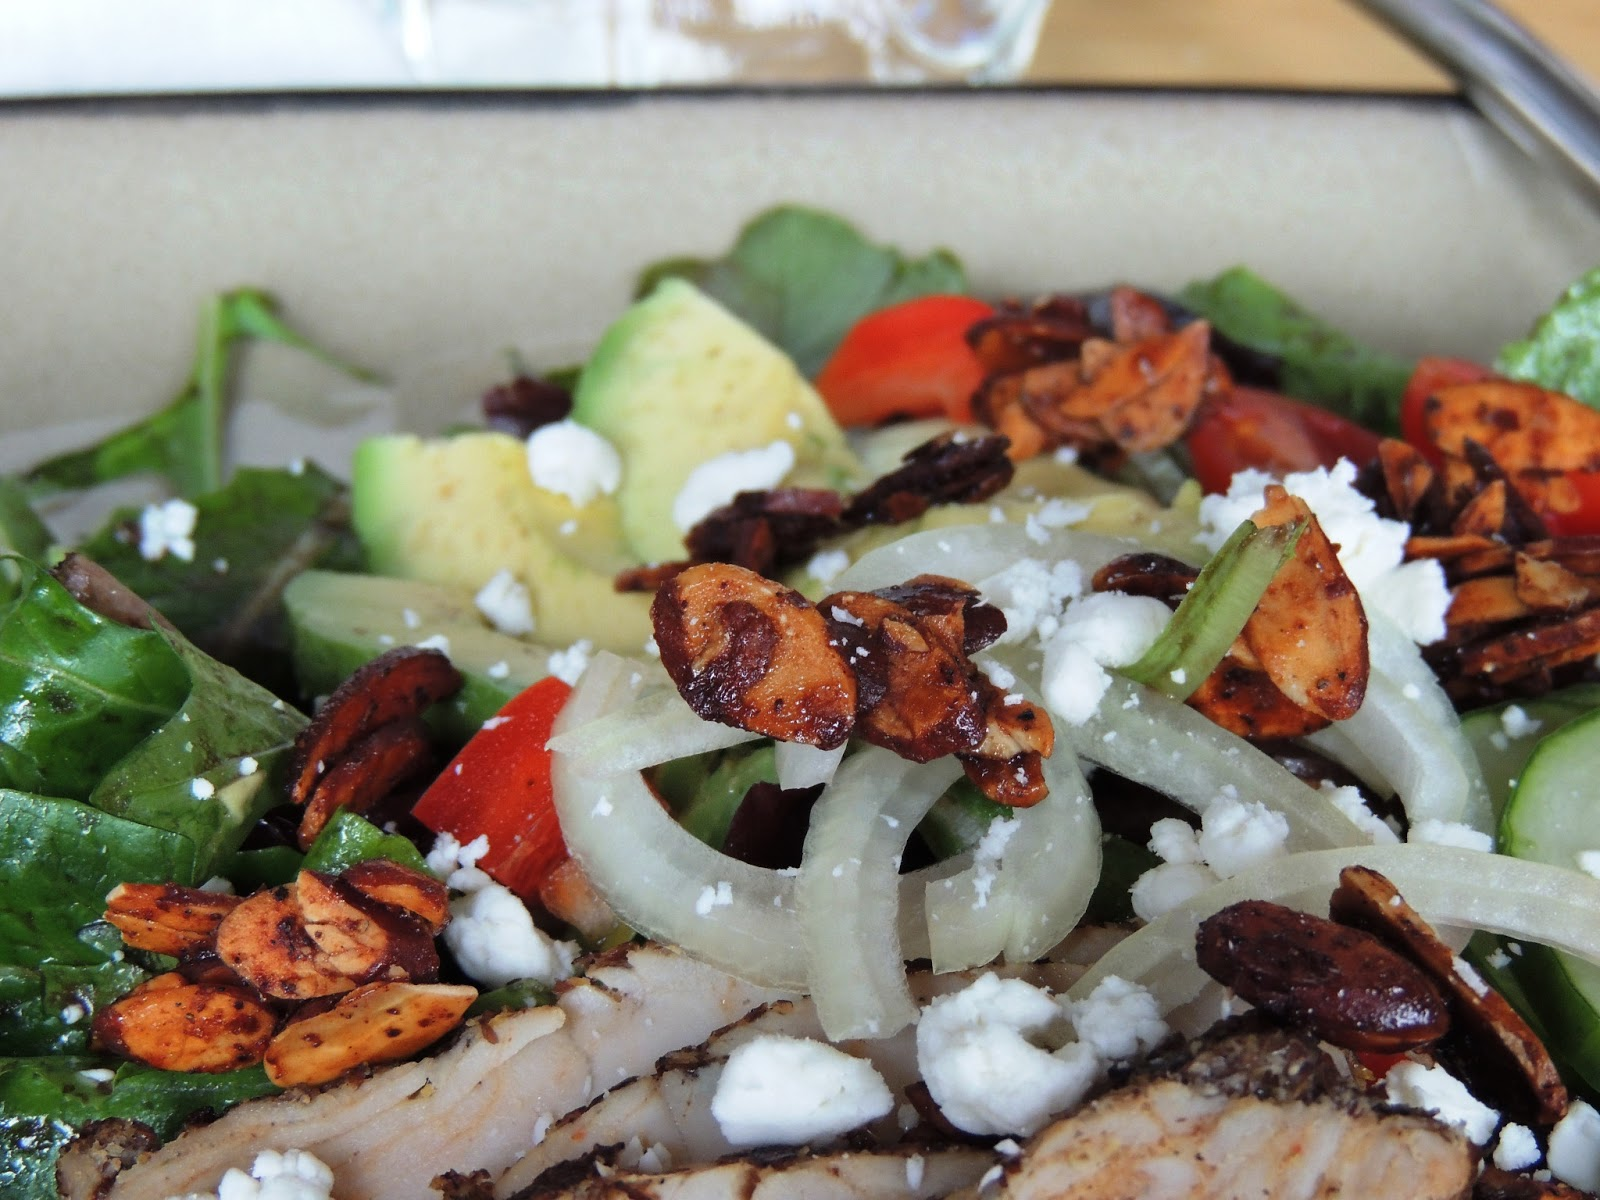 Leave a Happy Plate: Roasted Turkey Salad with Maple ...